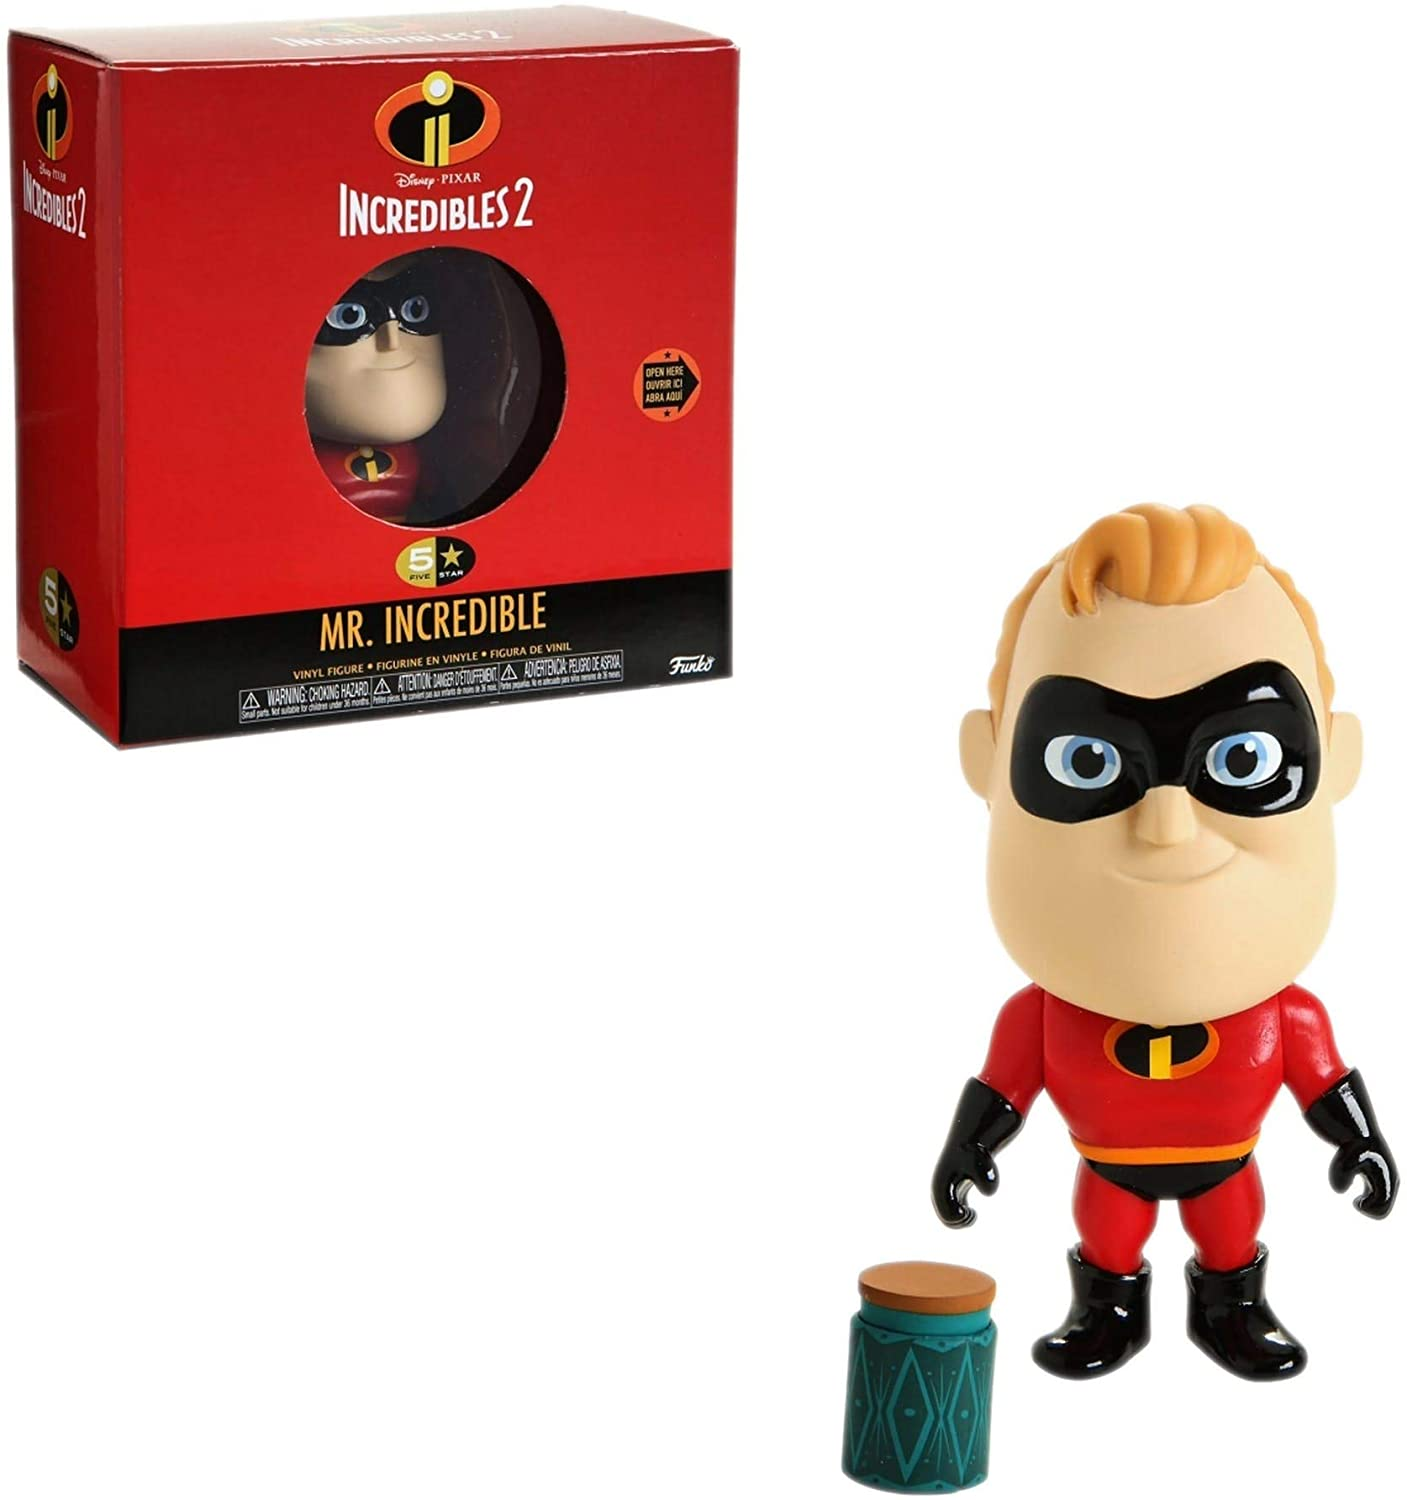 Five Star Incredibles 2 Mr. Incredible